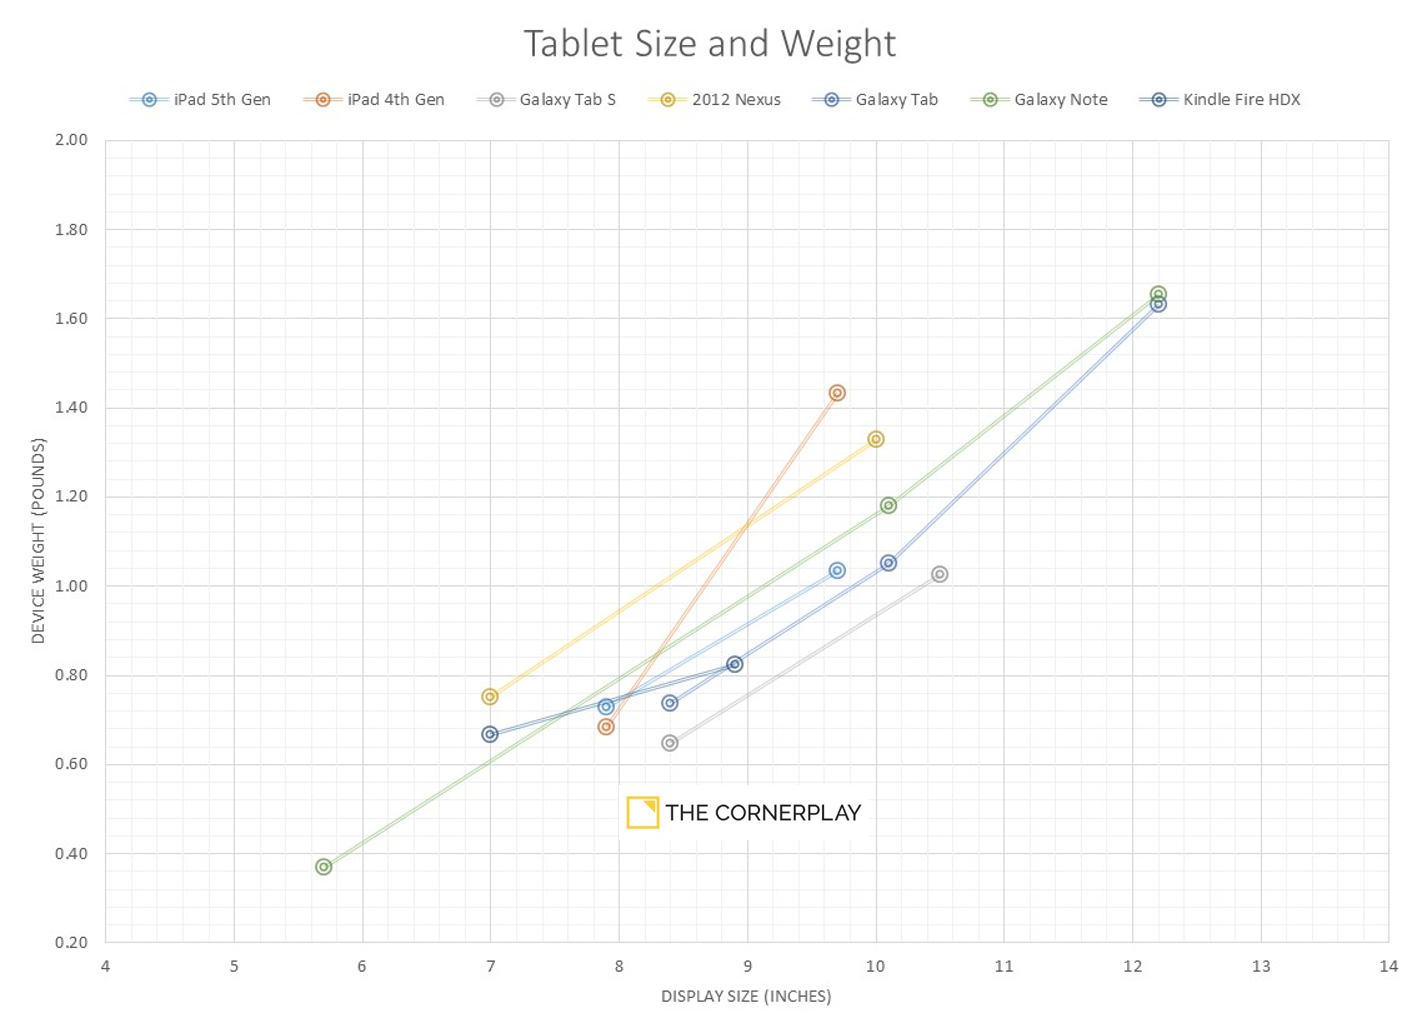 Tablet weight to screen size ratio